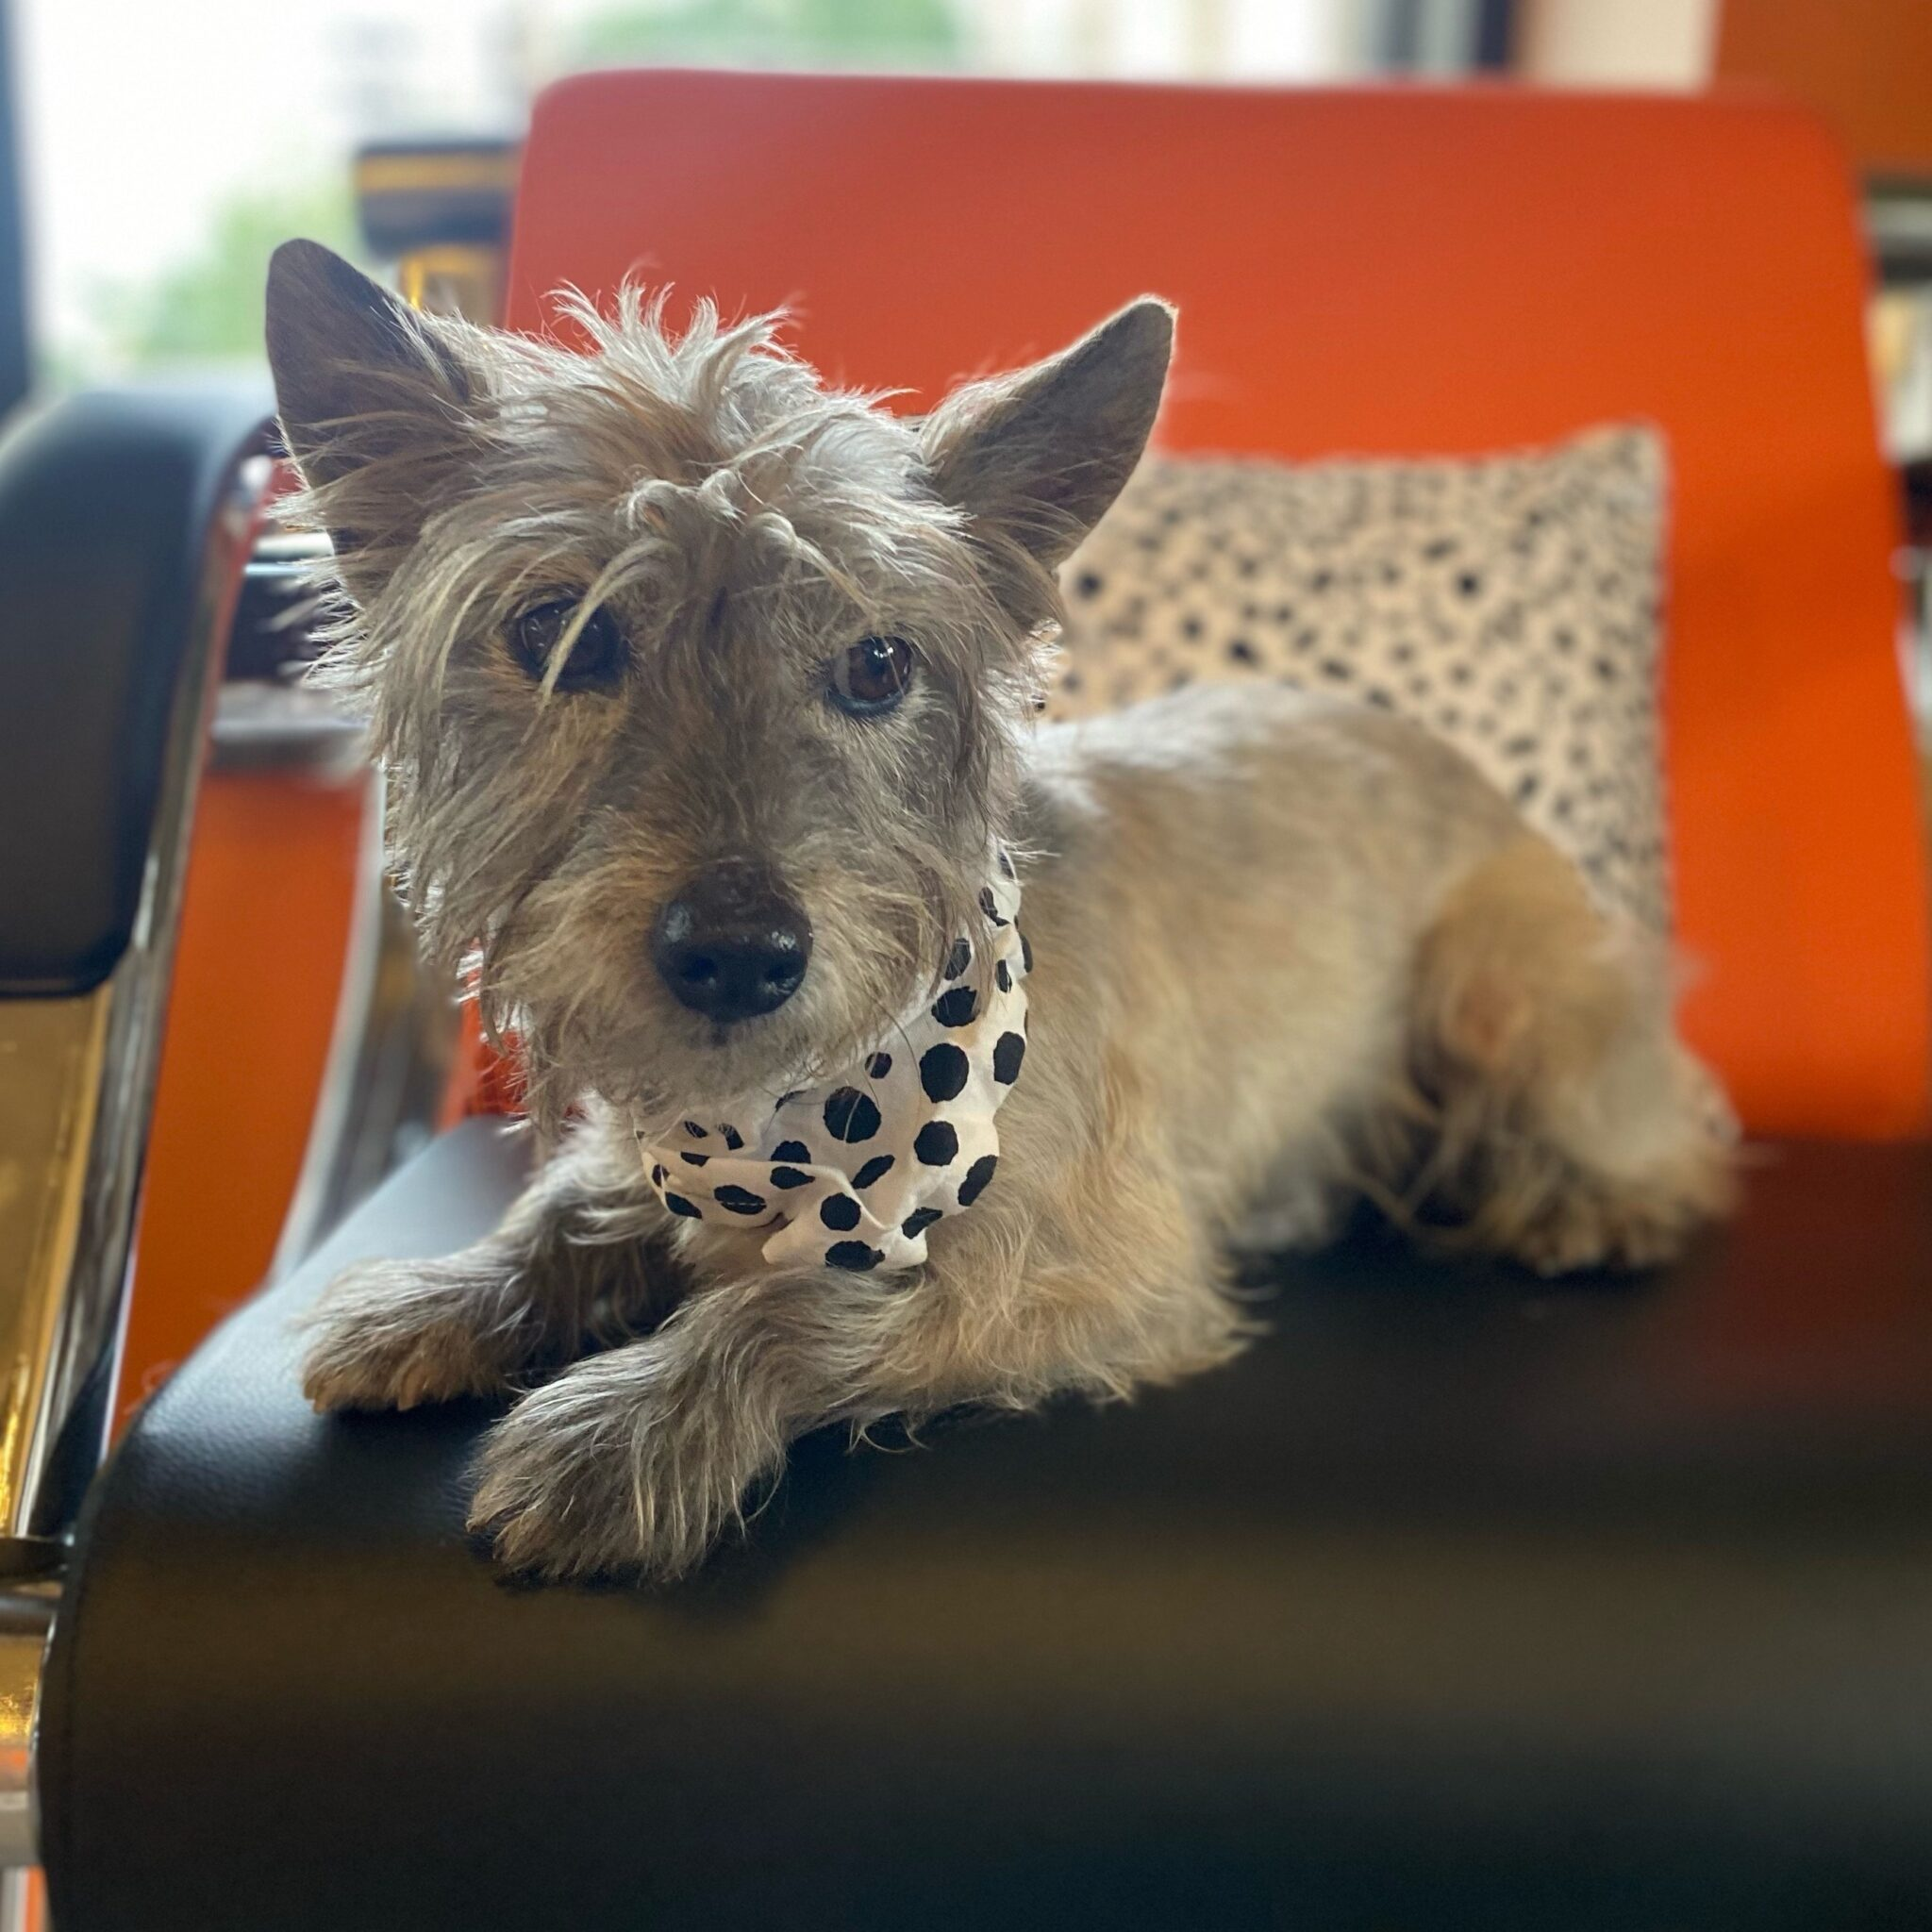 Little dog on chair